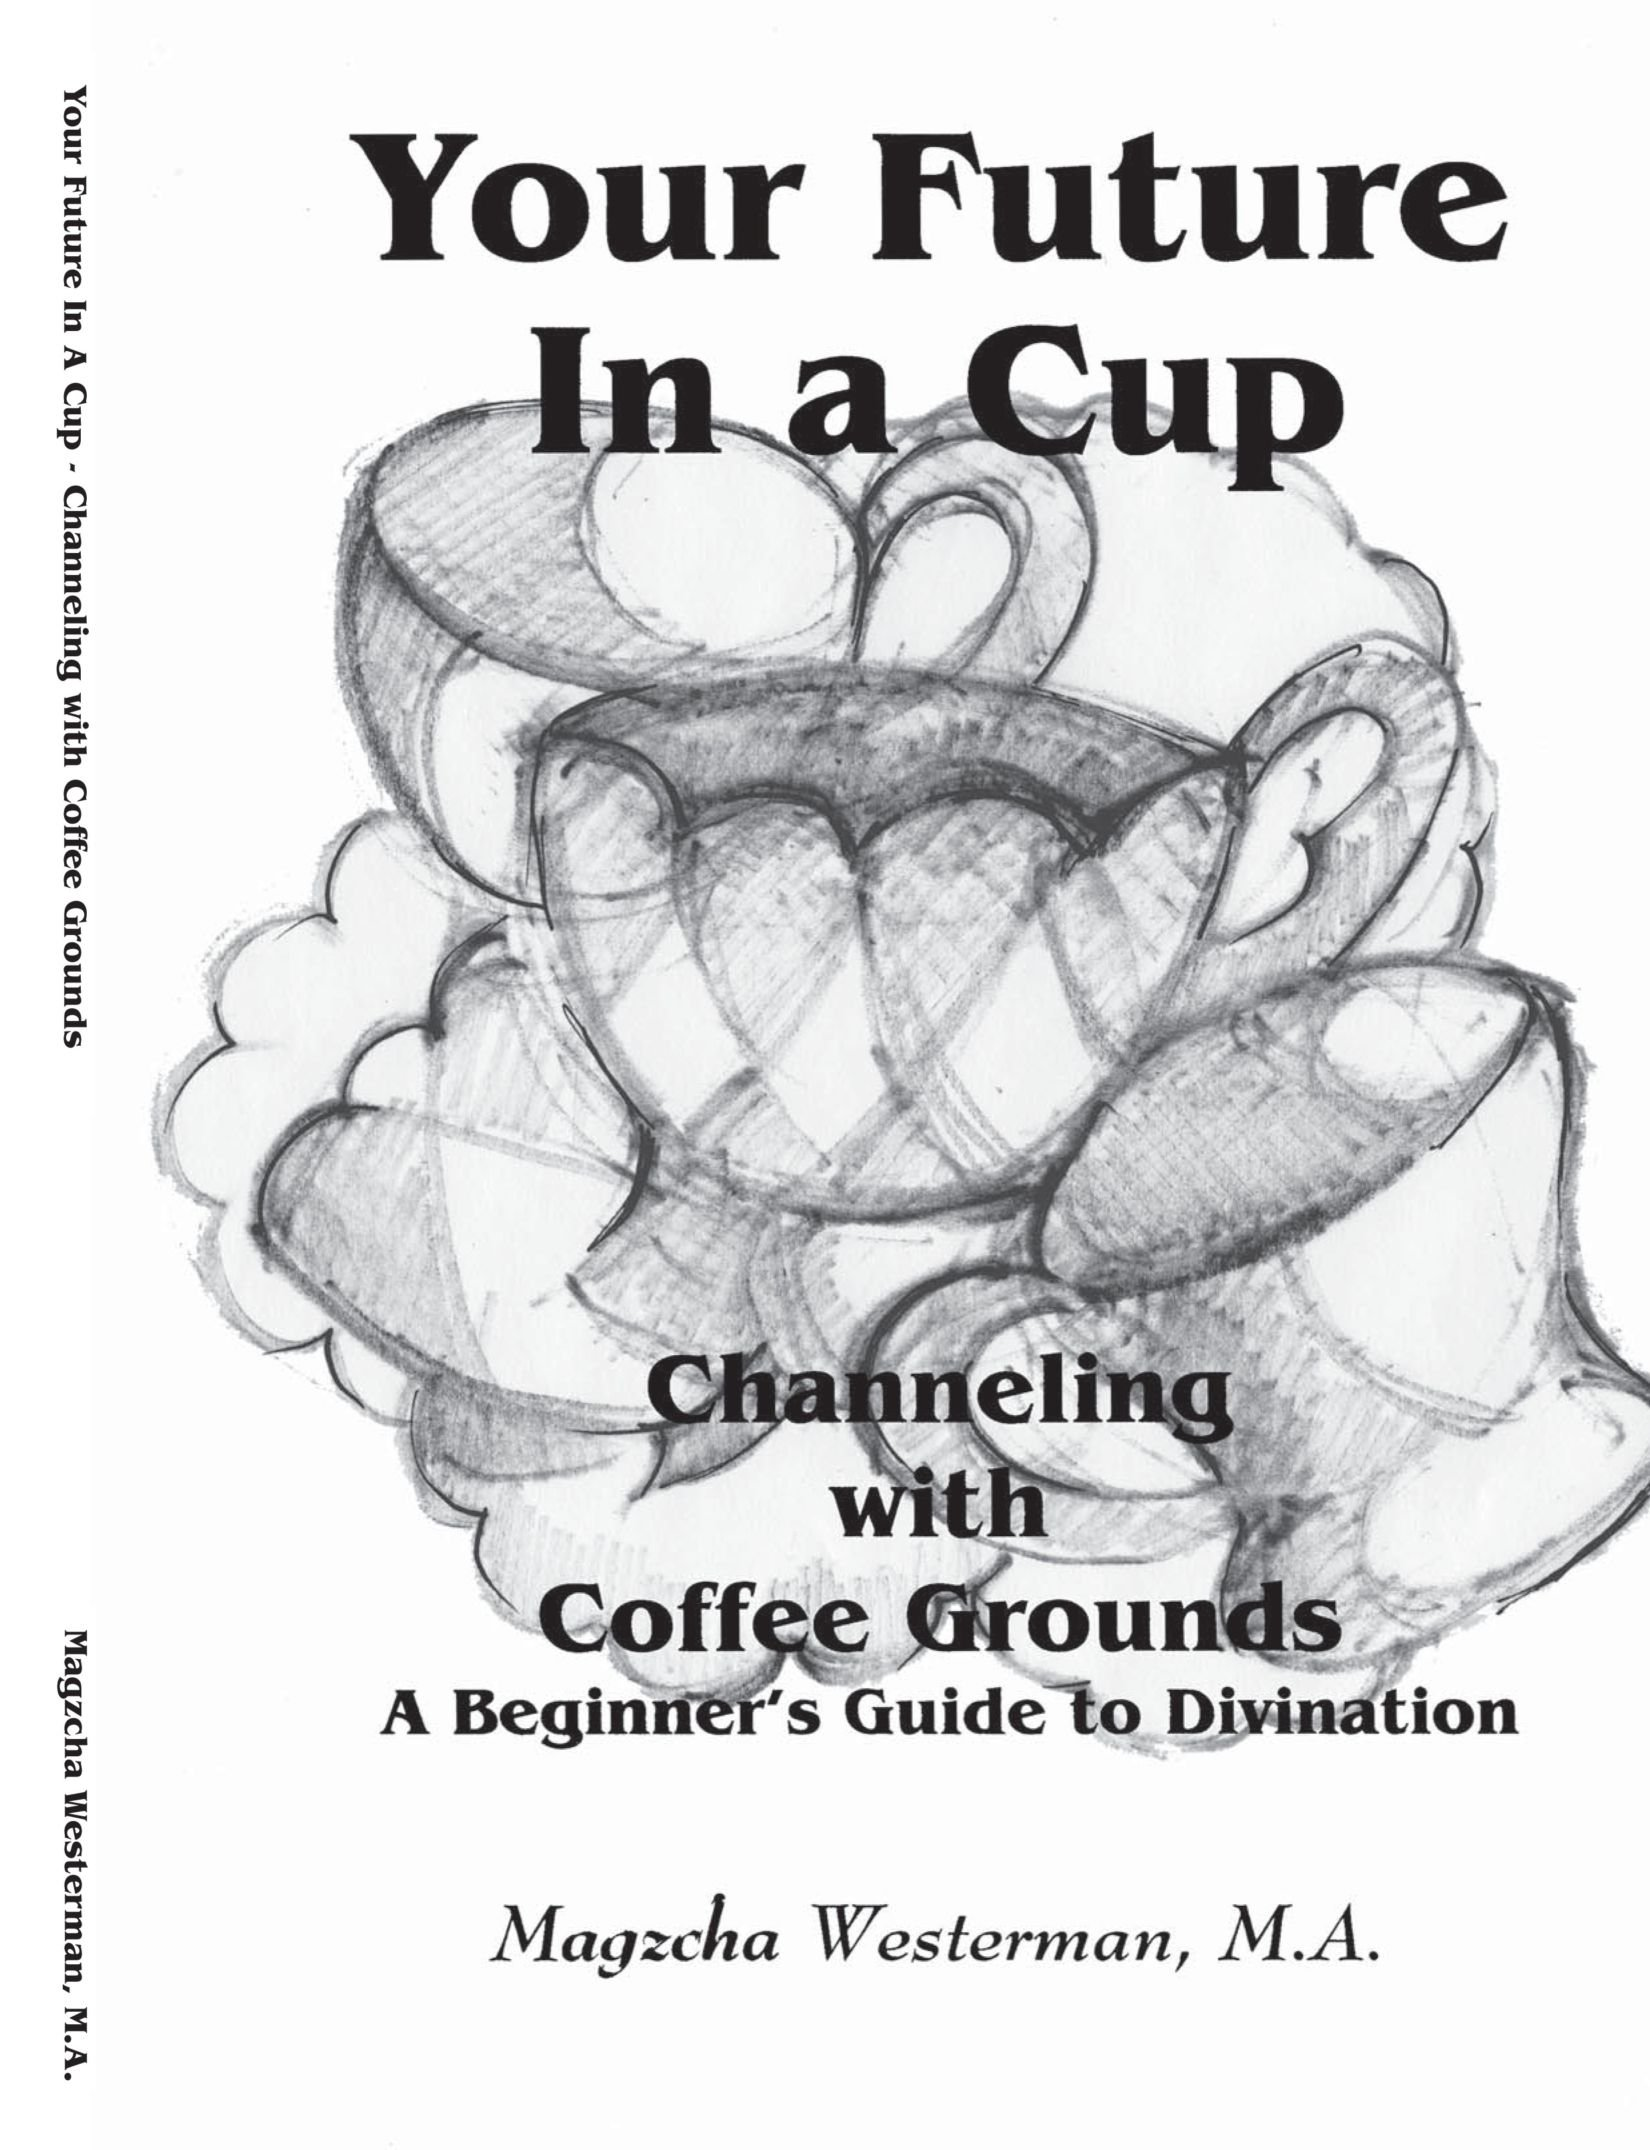 Your future in a cup channeling with coffee grounds a your future in a cup channeling with coffee grounds a beginners guide to divination magzcha westerman 9781412050555 amazon books biocorpaavc Choice Image